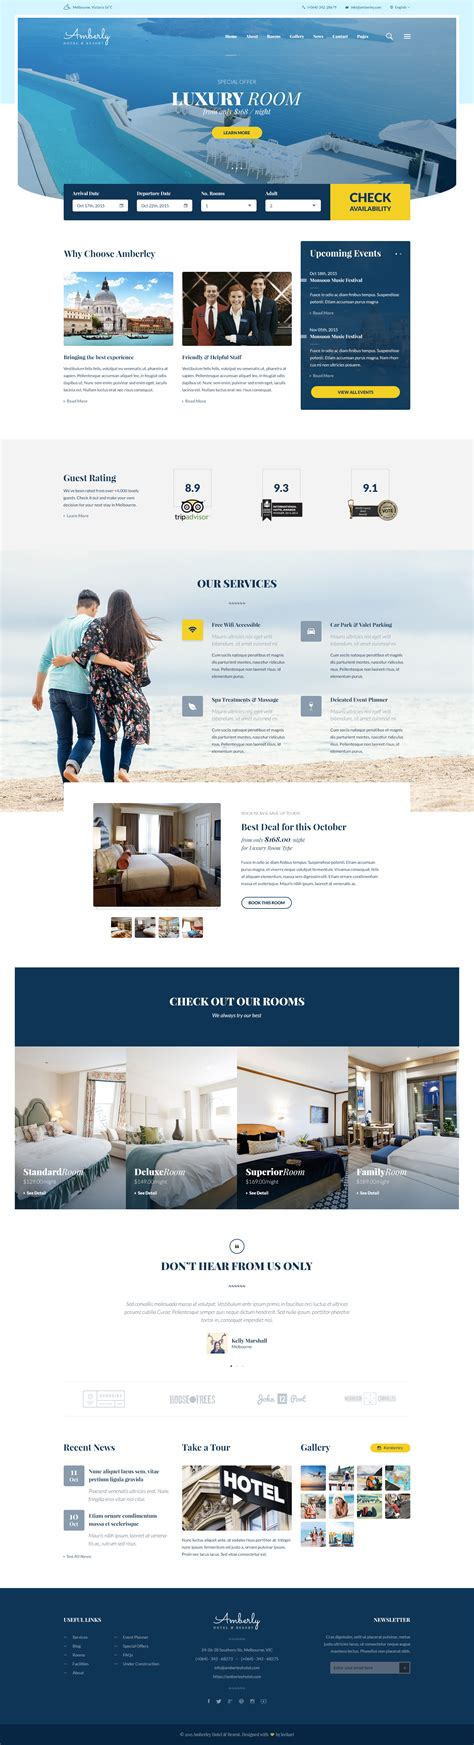 how to create a stylish hotel website psd to html 10 best premium psd website templates october 2015